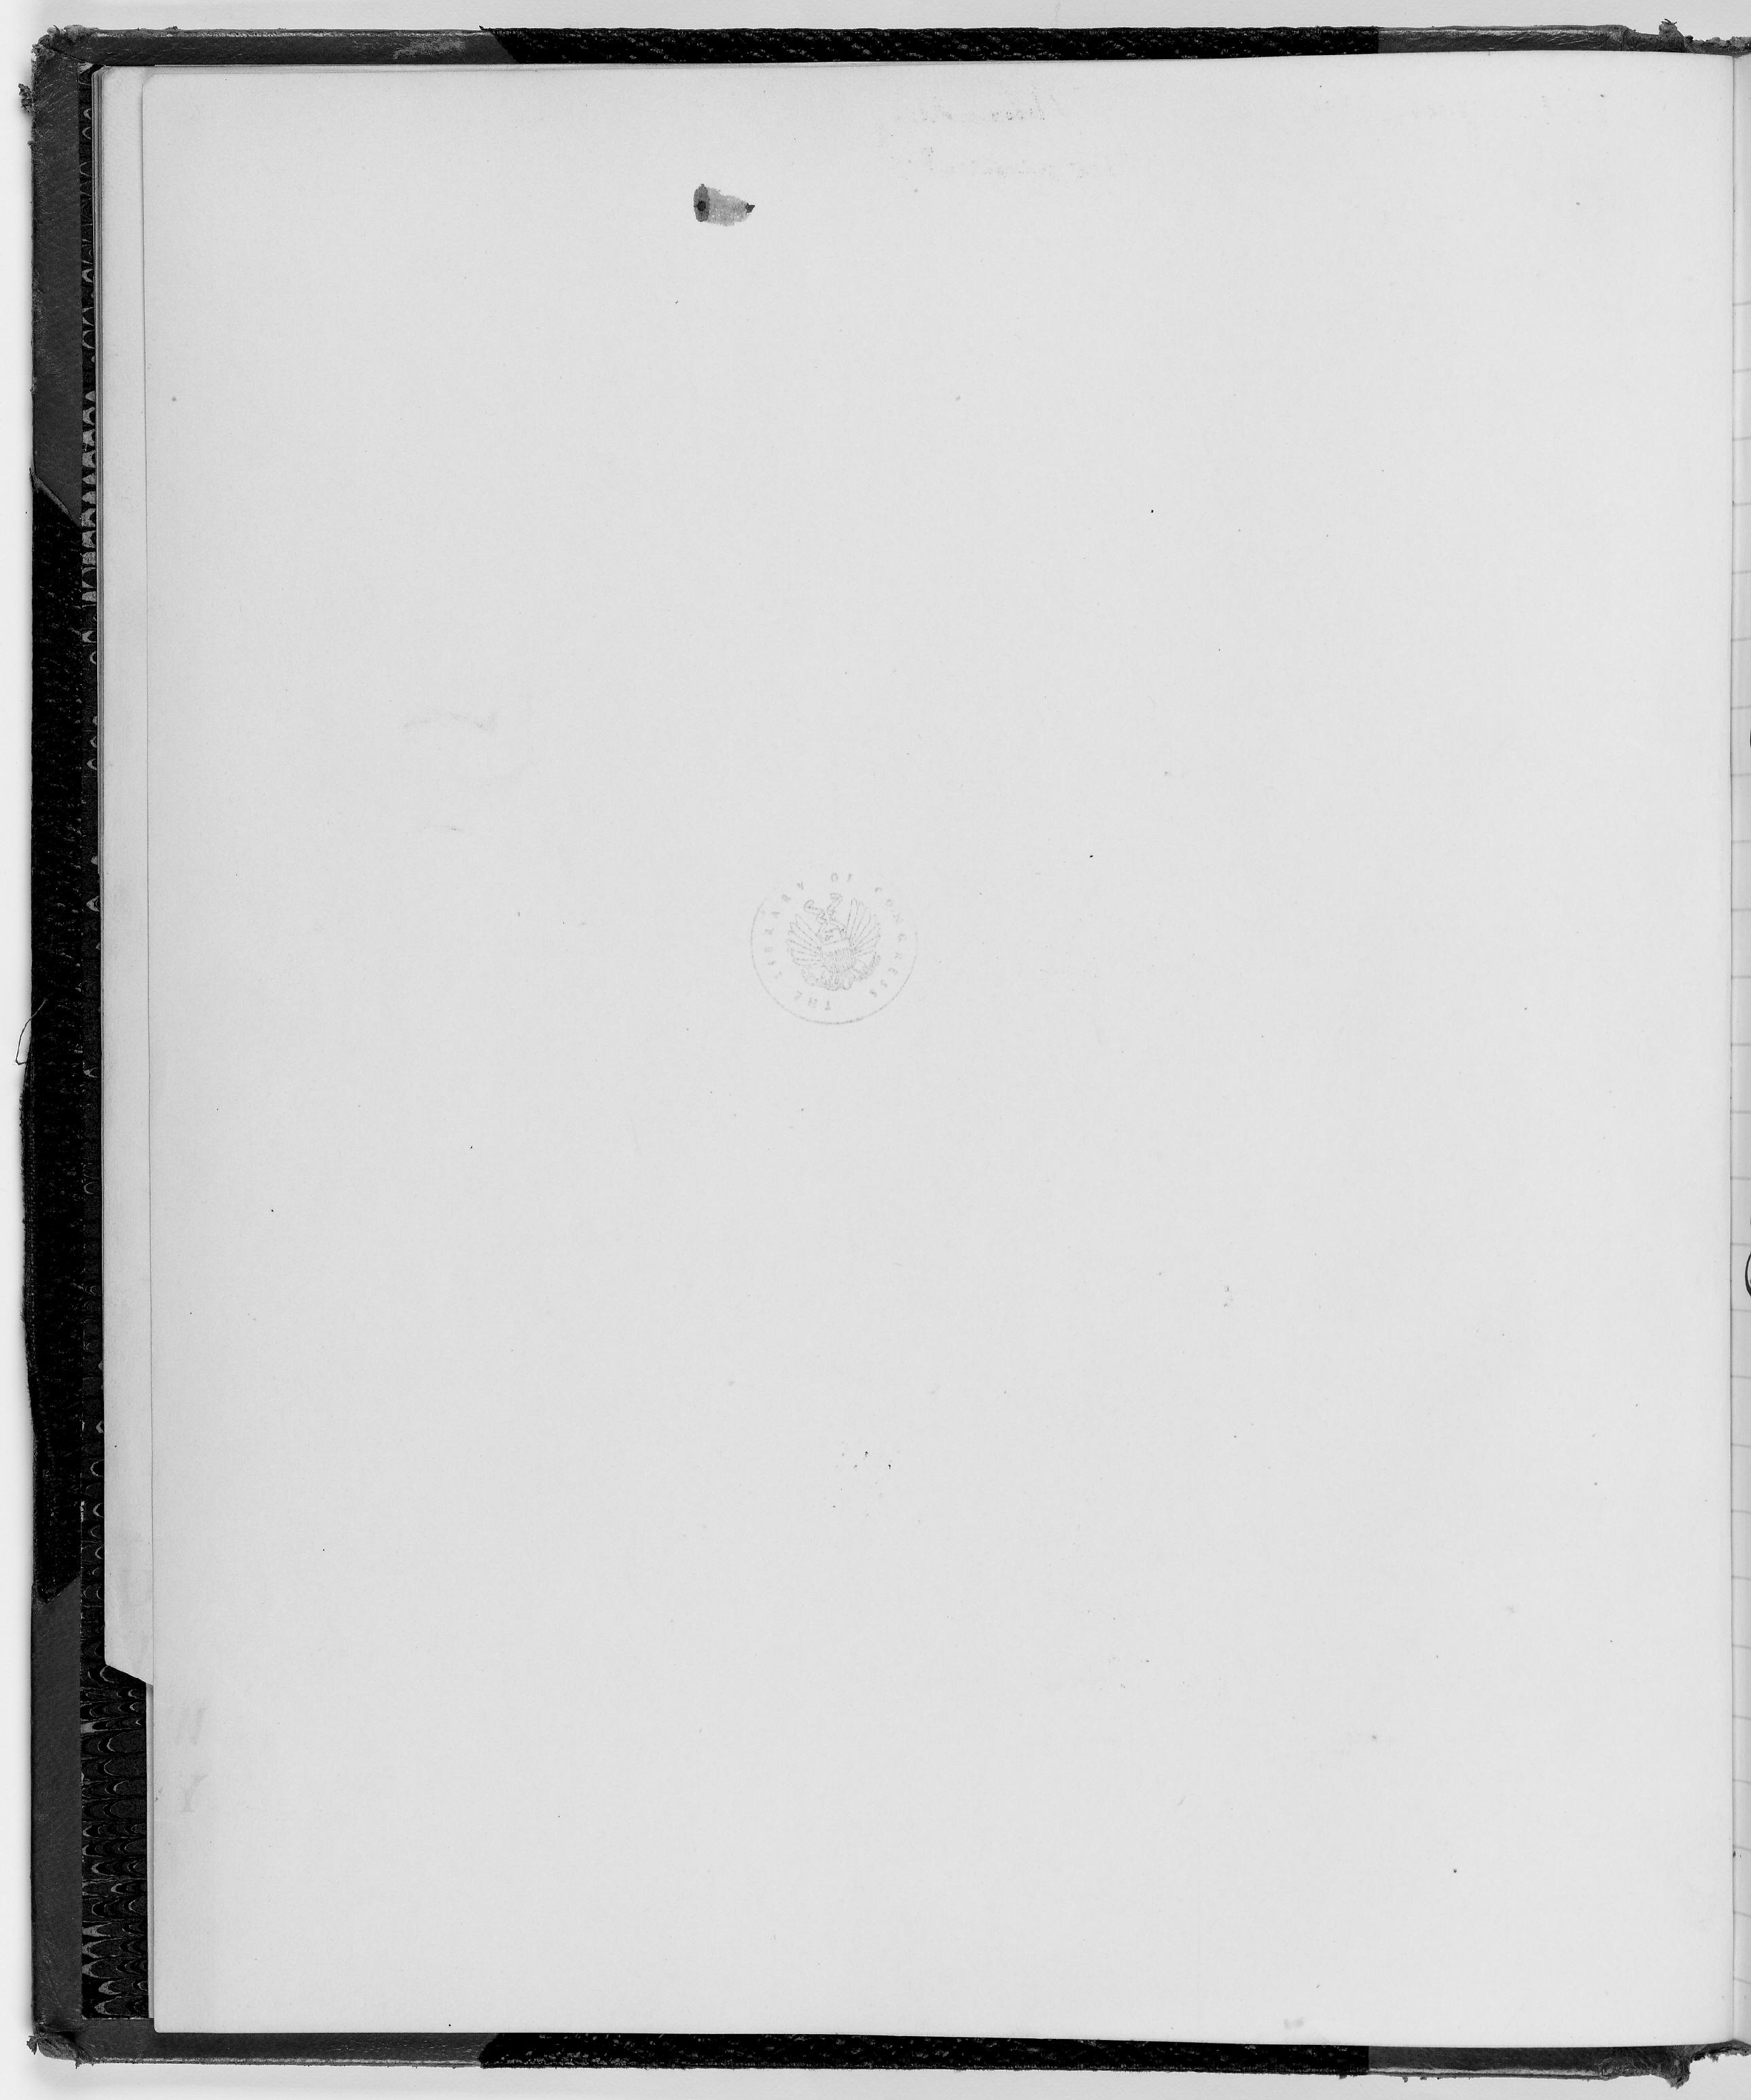 Notebook by Alexander Graham Bell, from January 20, 1910